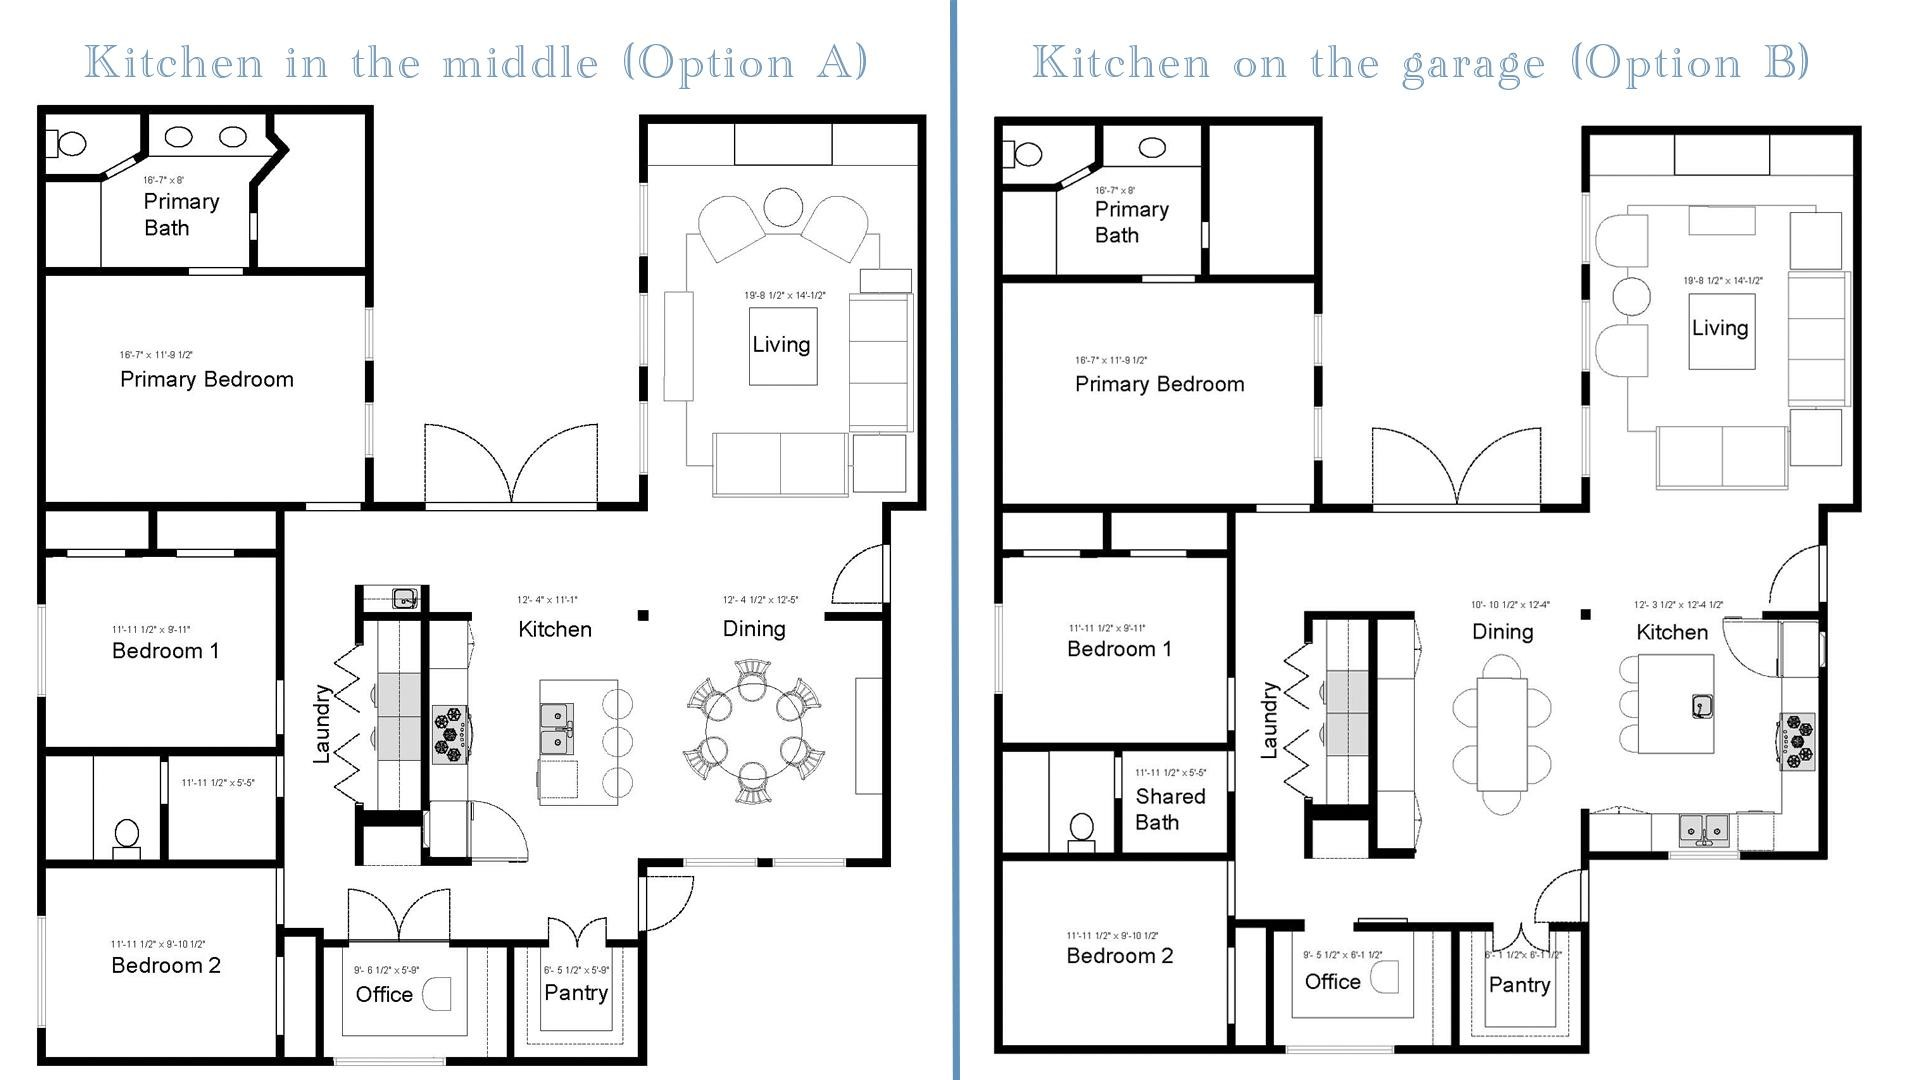 Side by the side comparison of the open concept floor plans for the kitchen renovation